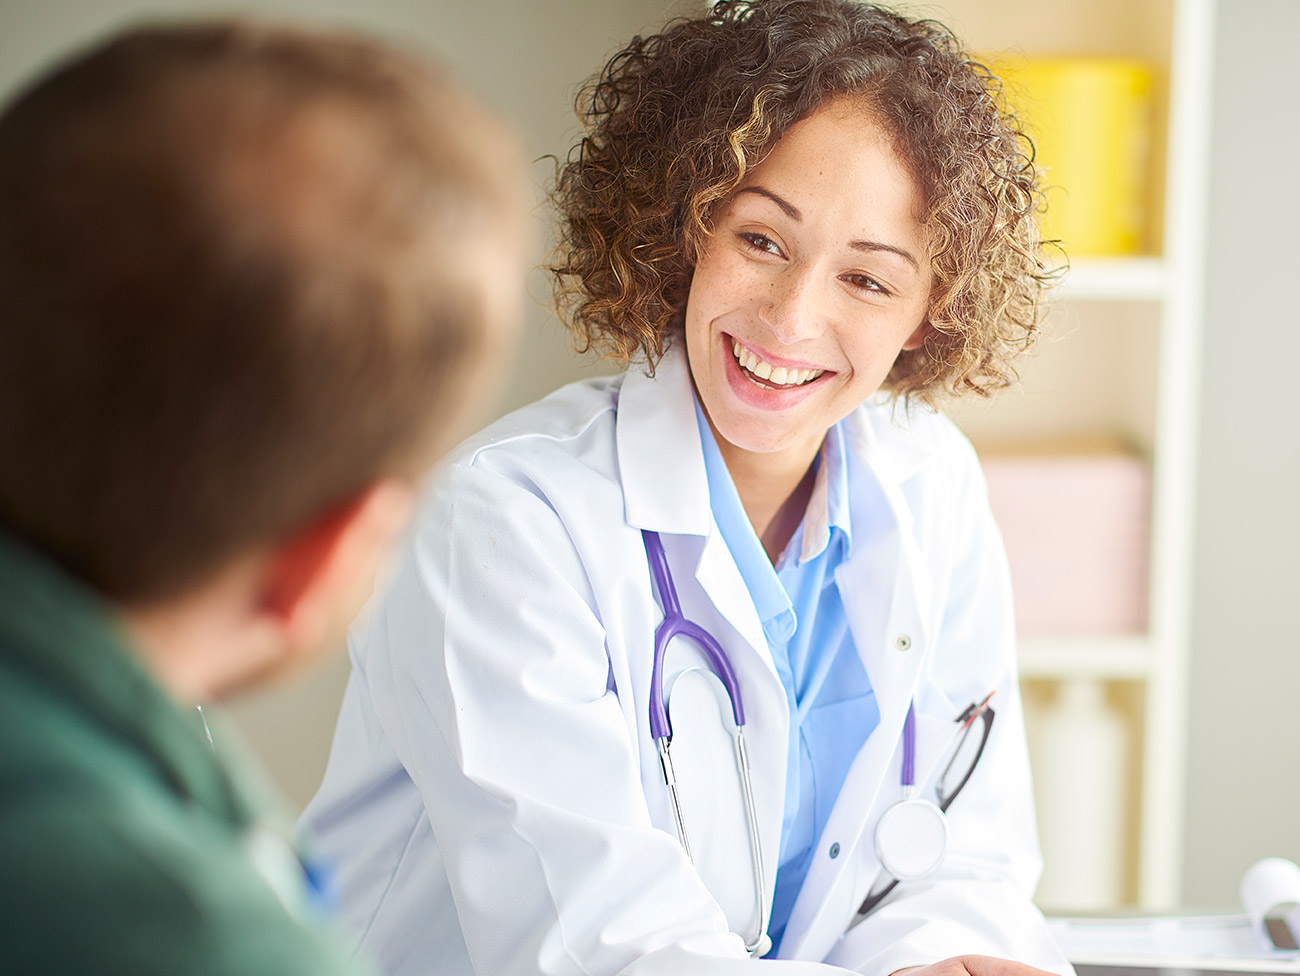 Male patient listening intently while female doctor reviews chart